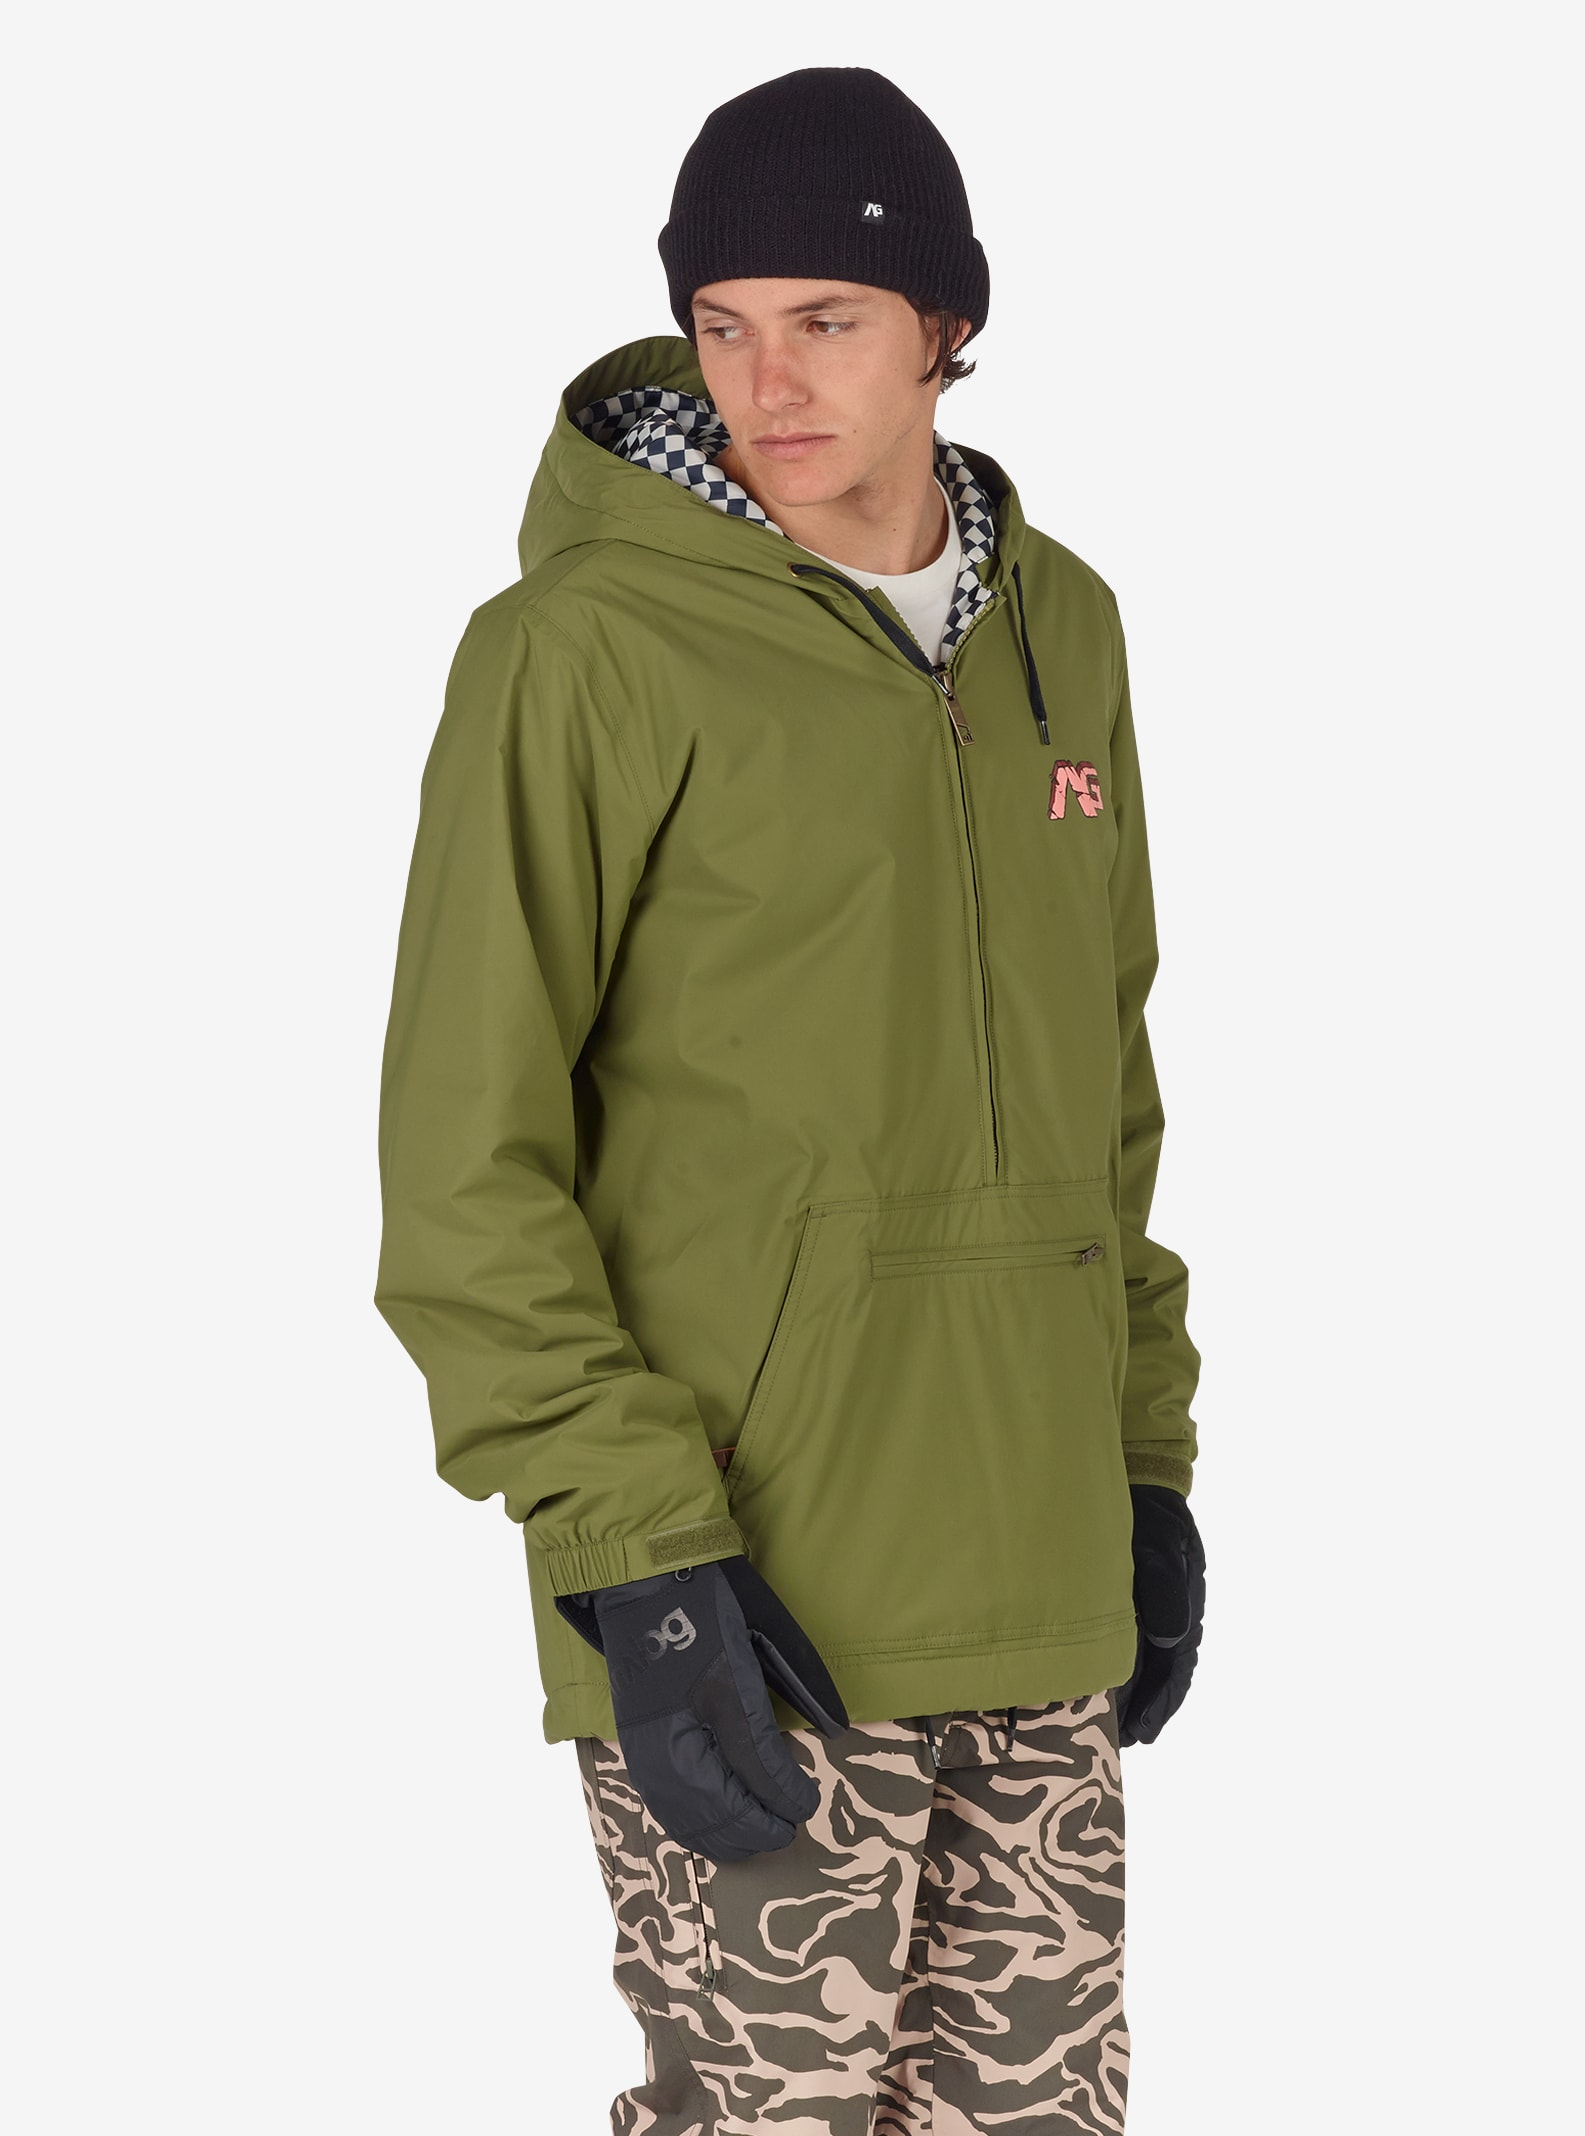 Men's Analog Caldwell Anorak shown in Olive Branch